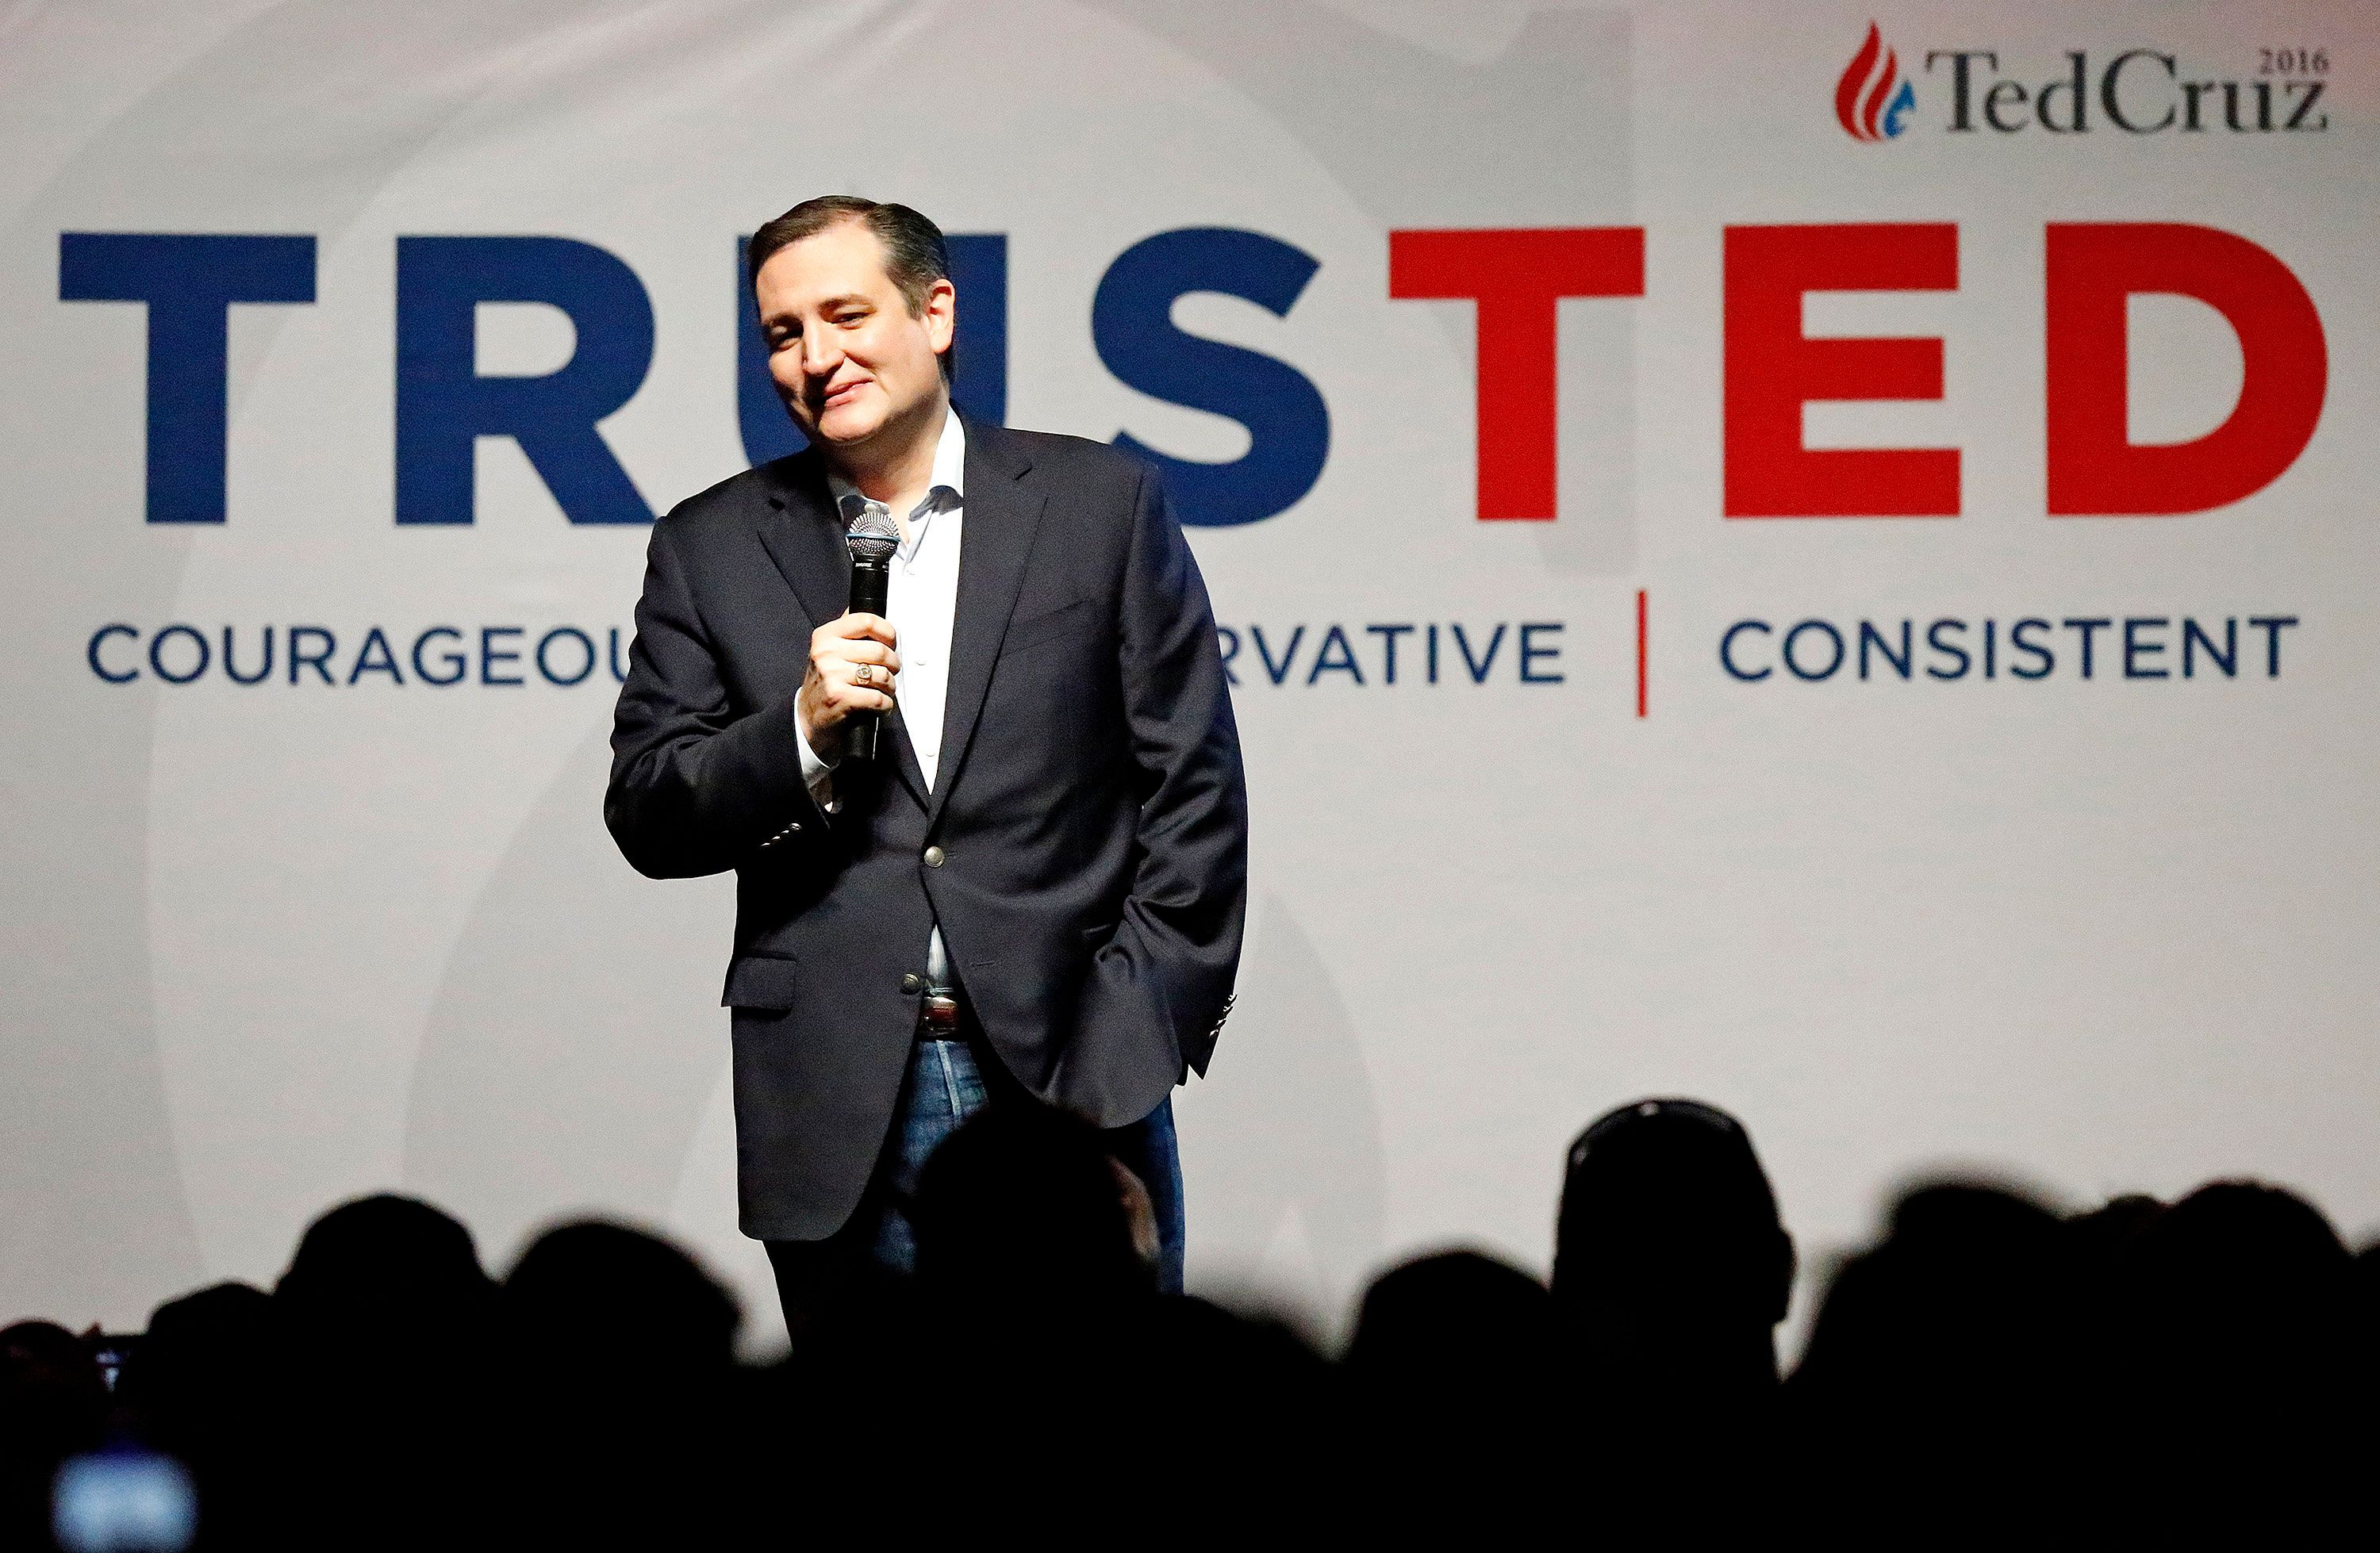 DALLAS, TX - FEBRUARY 29:  Republican presidential candidate Sen. Ted Cruz (R-TX) speaks at a rally at Gilley's Dallas the day before Super Tuesday February 29, 2016 in Dallas, Texas. Candidates have spread themselves out over the U.S. in the lead up to Super Tuesday where twelve states will hold primary voting. (Photo by Stewart F. House/Getty Images)